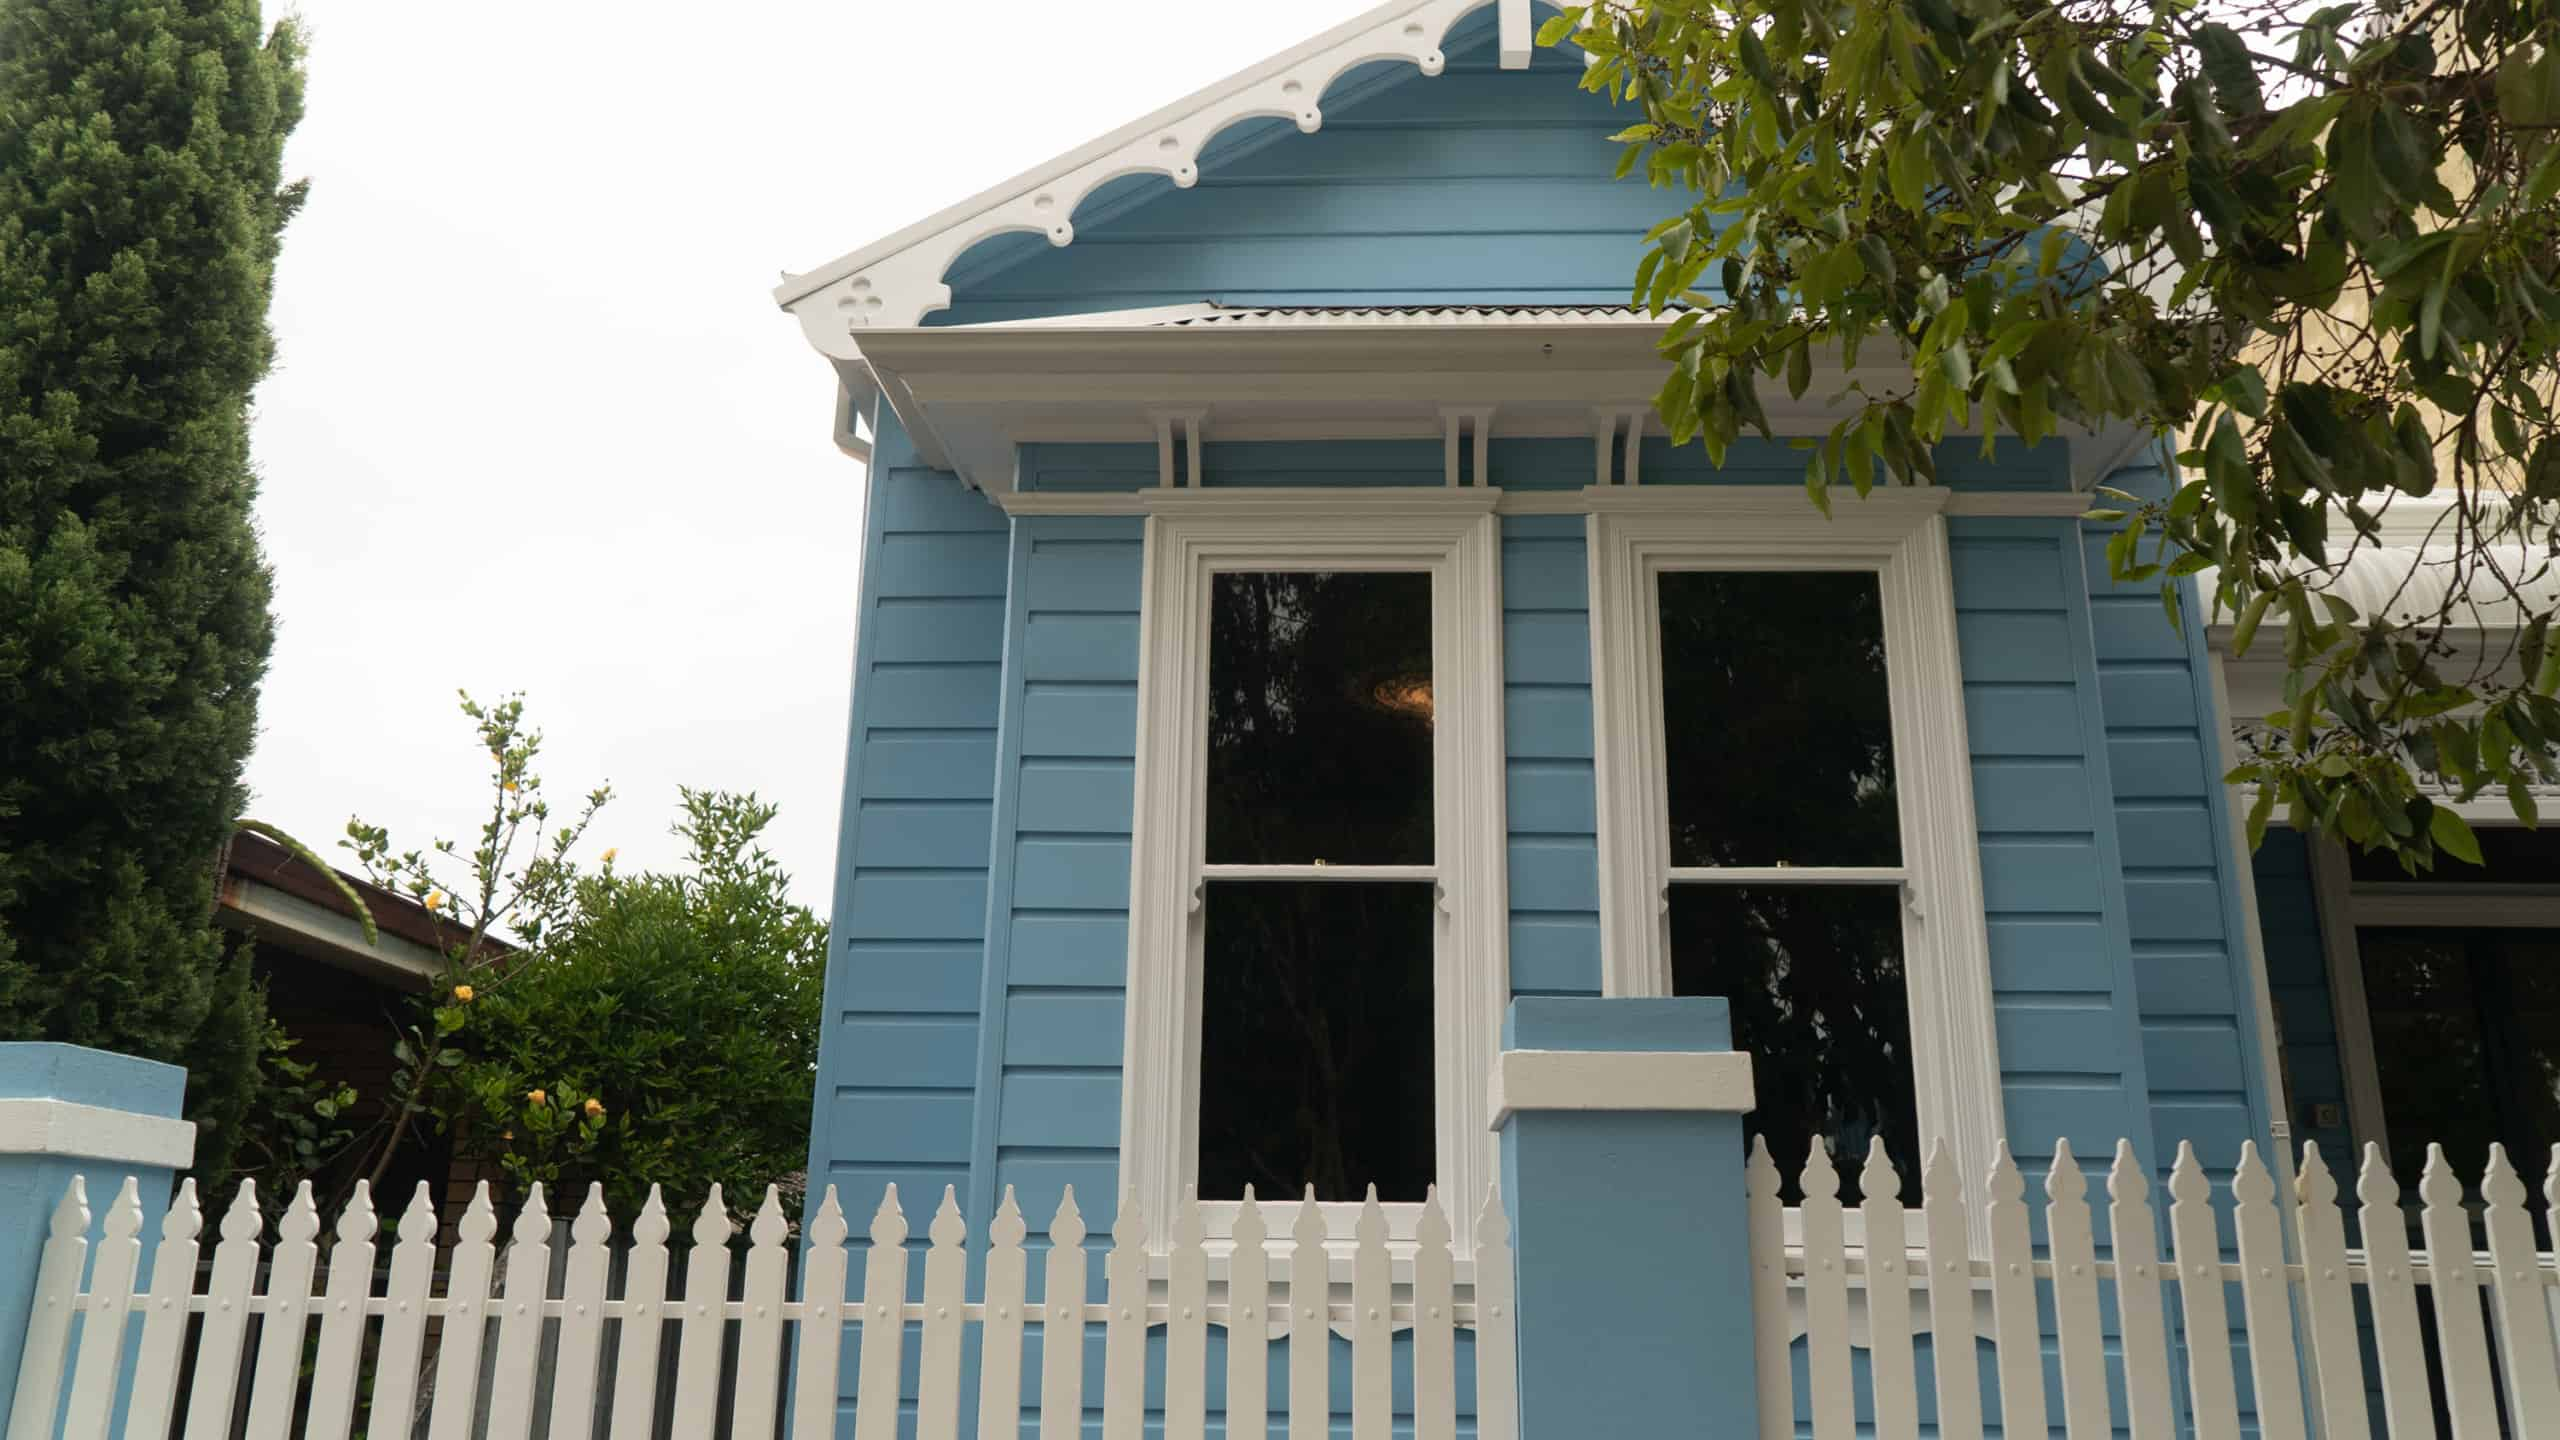 The exterior of a freshly painted heritage property with a white fence